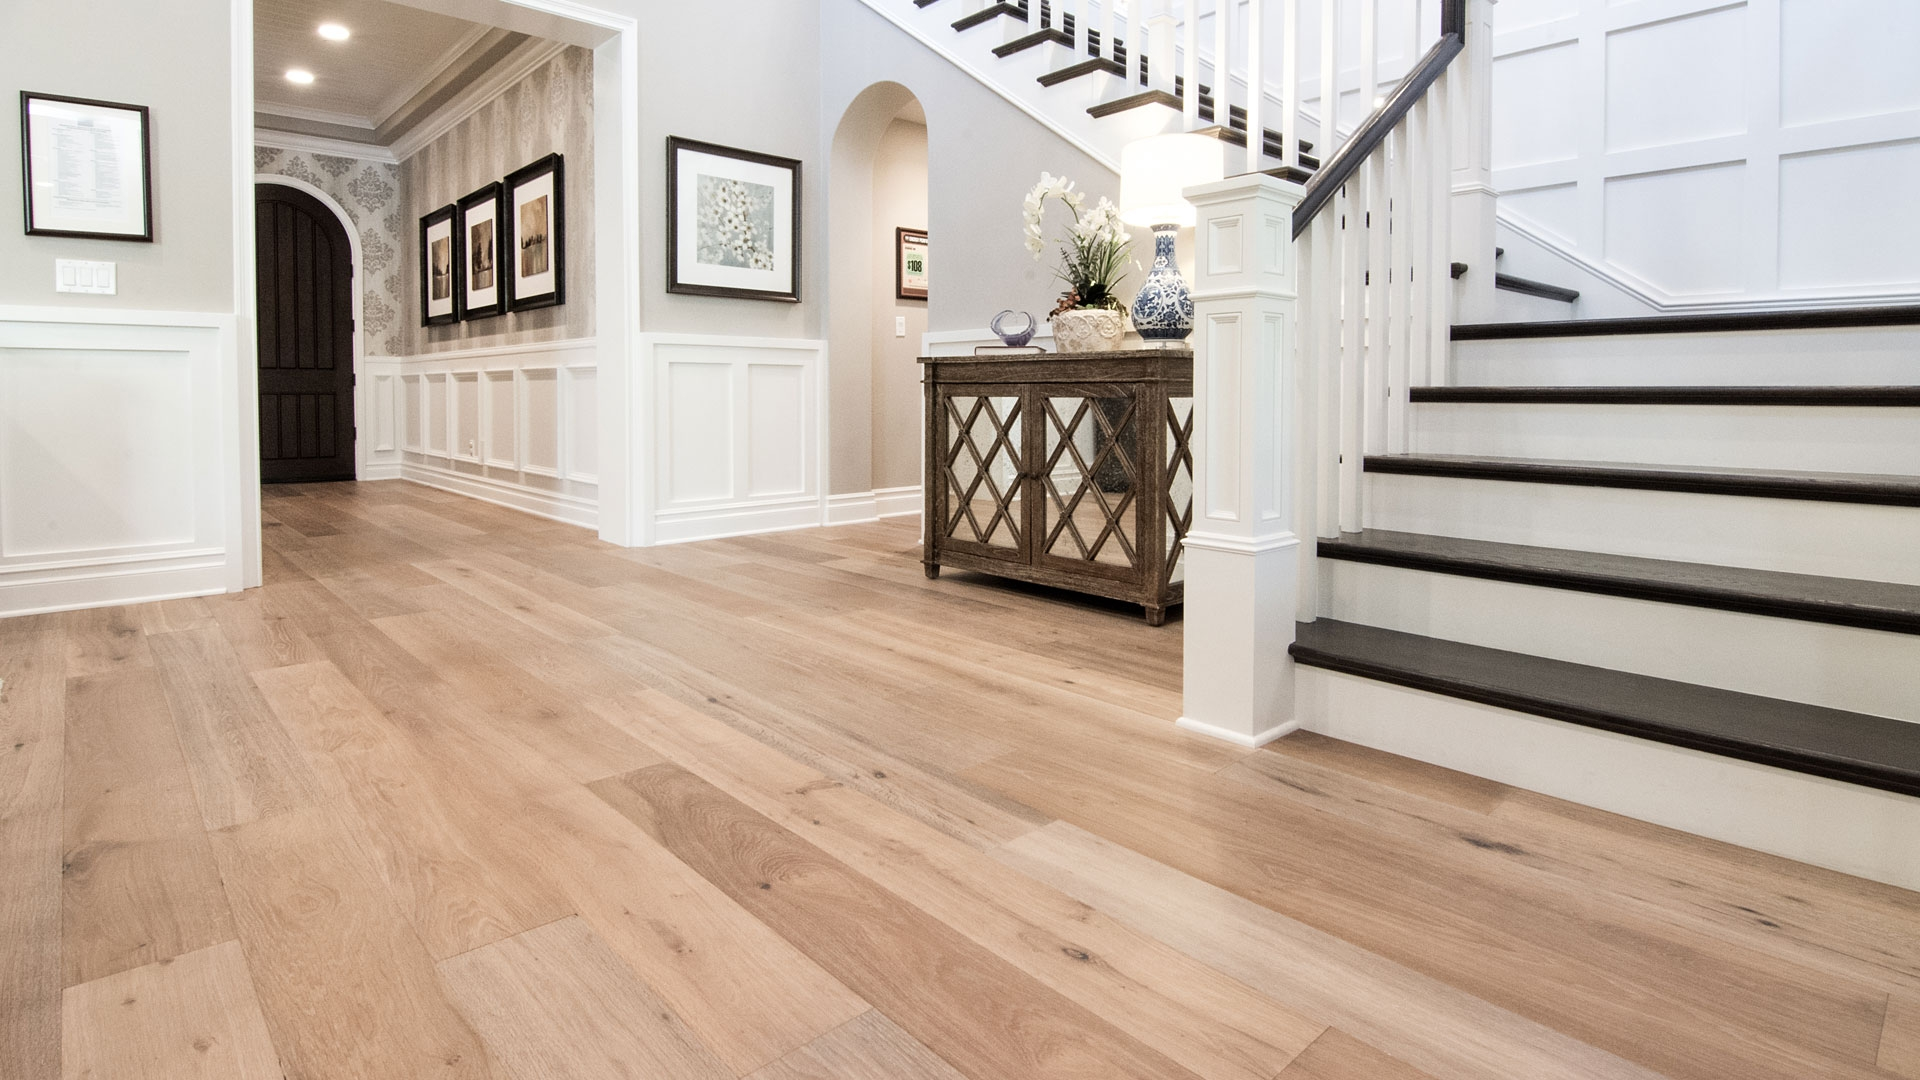 Model Homes With Wood Flooring